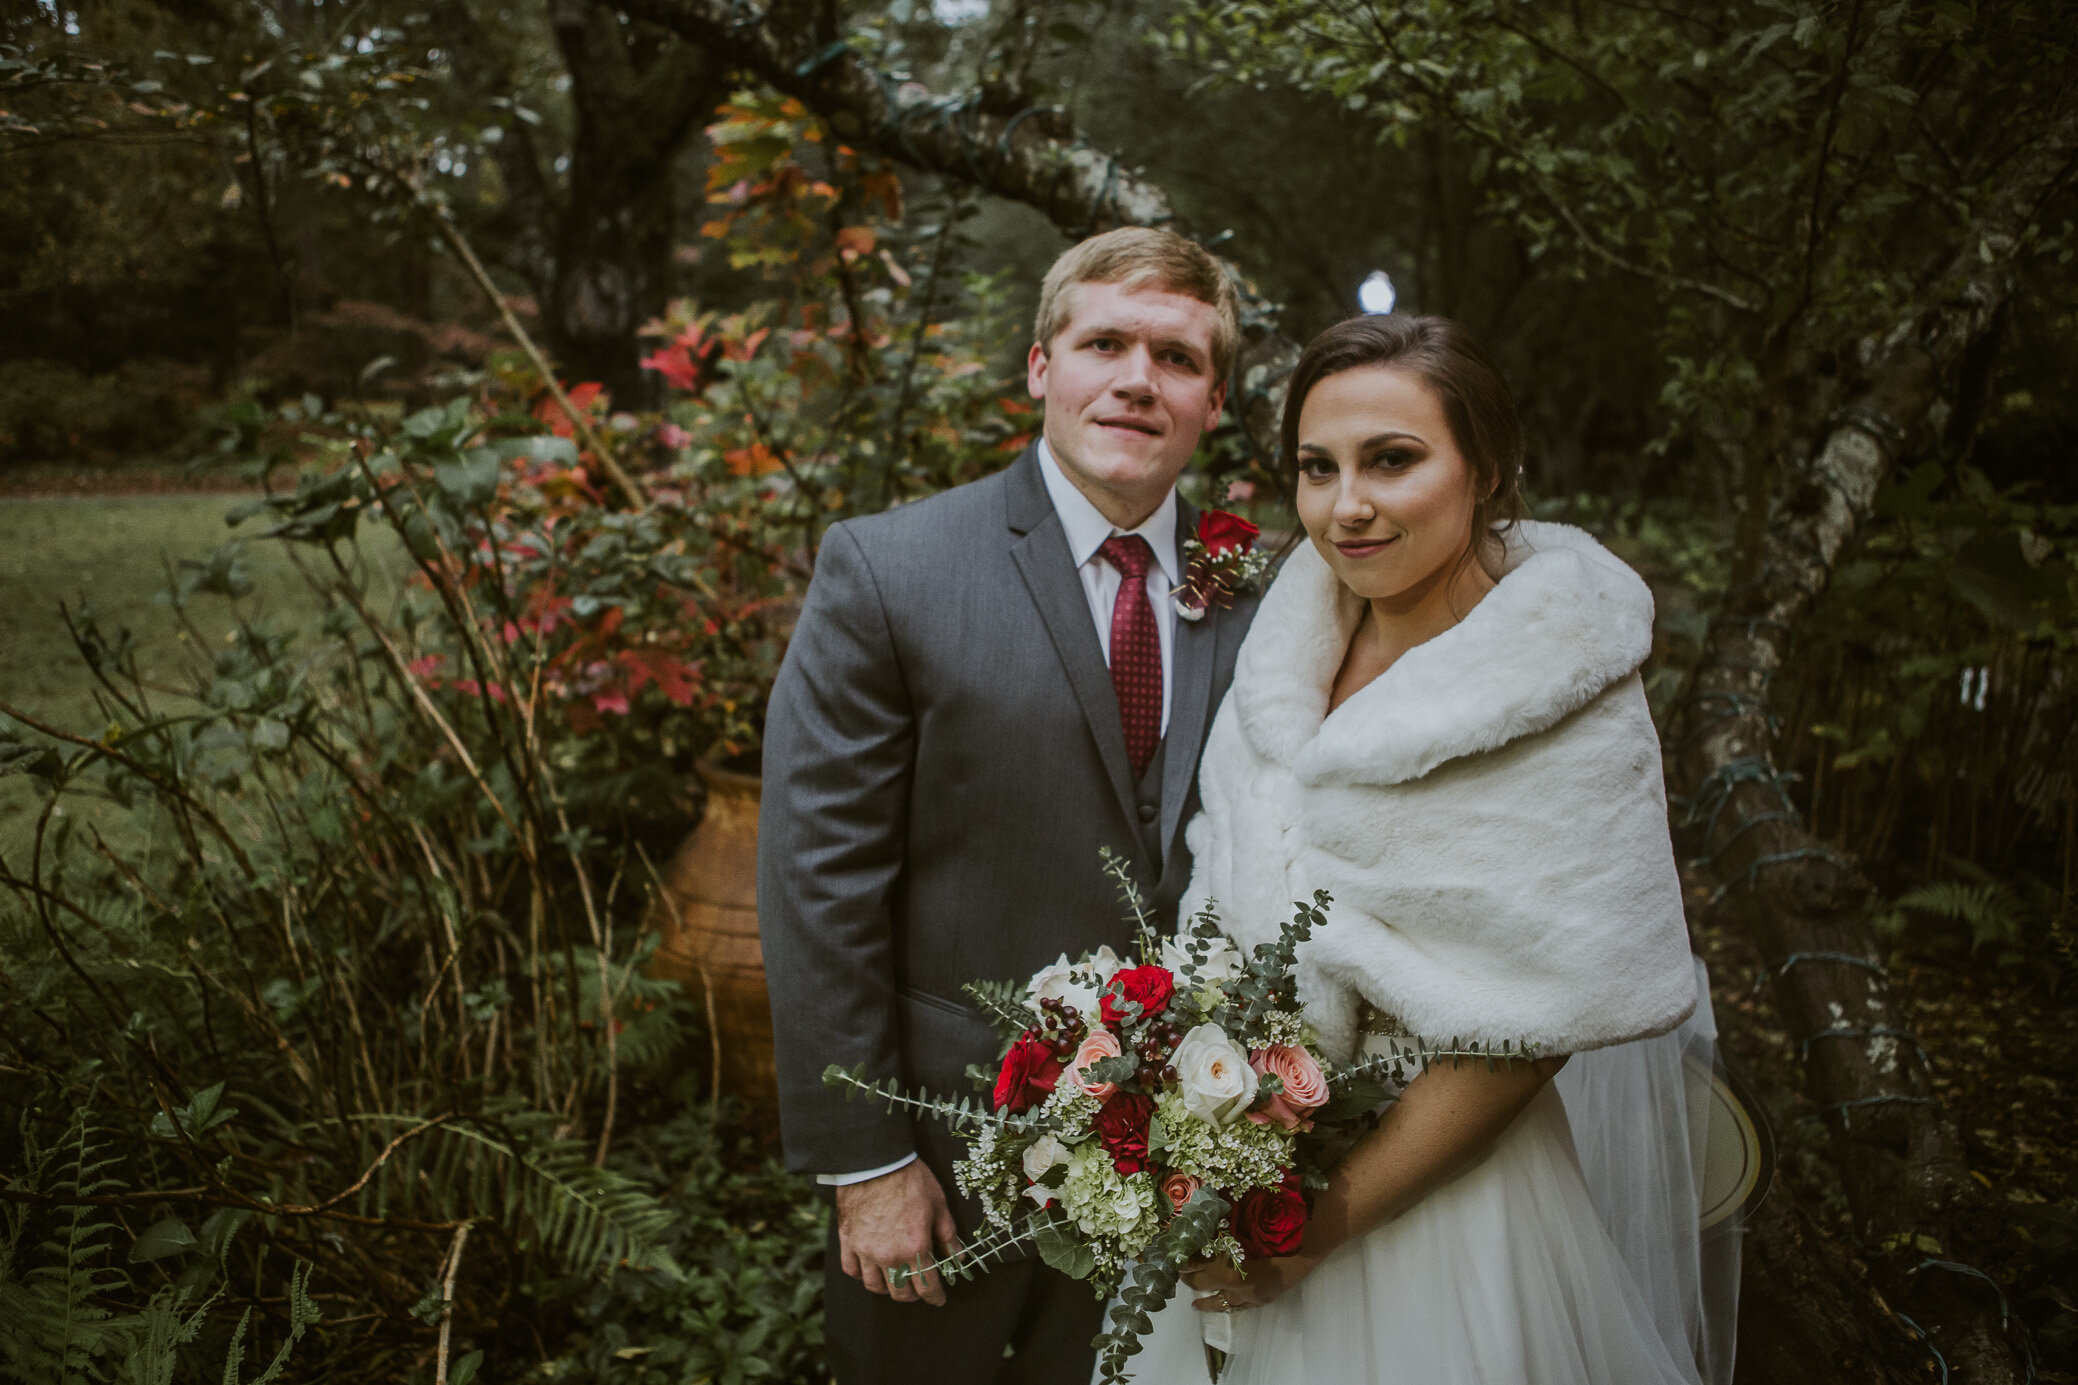 Colorado wedding photography and elopement photography info - including weddings and elopements in Denver, Vail, Aspen, Ft. Collins, Colorado Springs, and locations throughout the state.